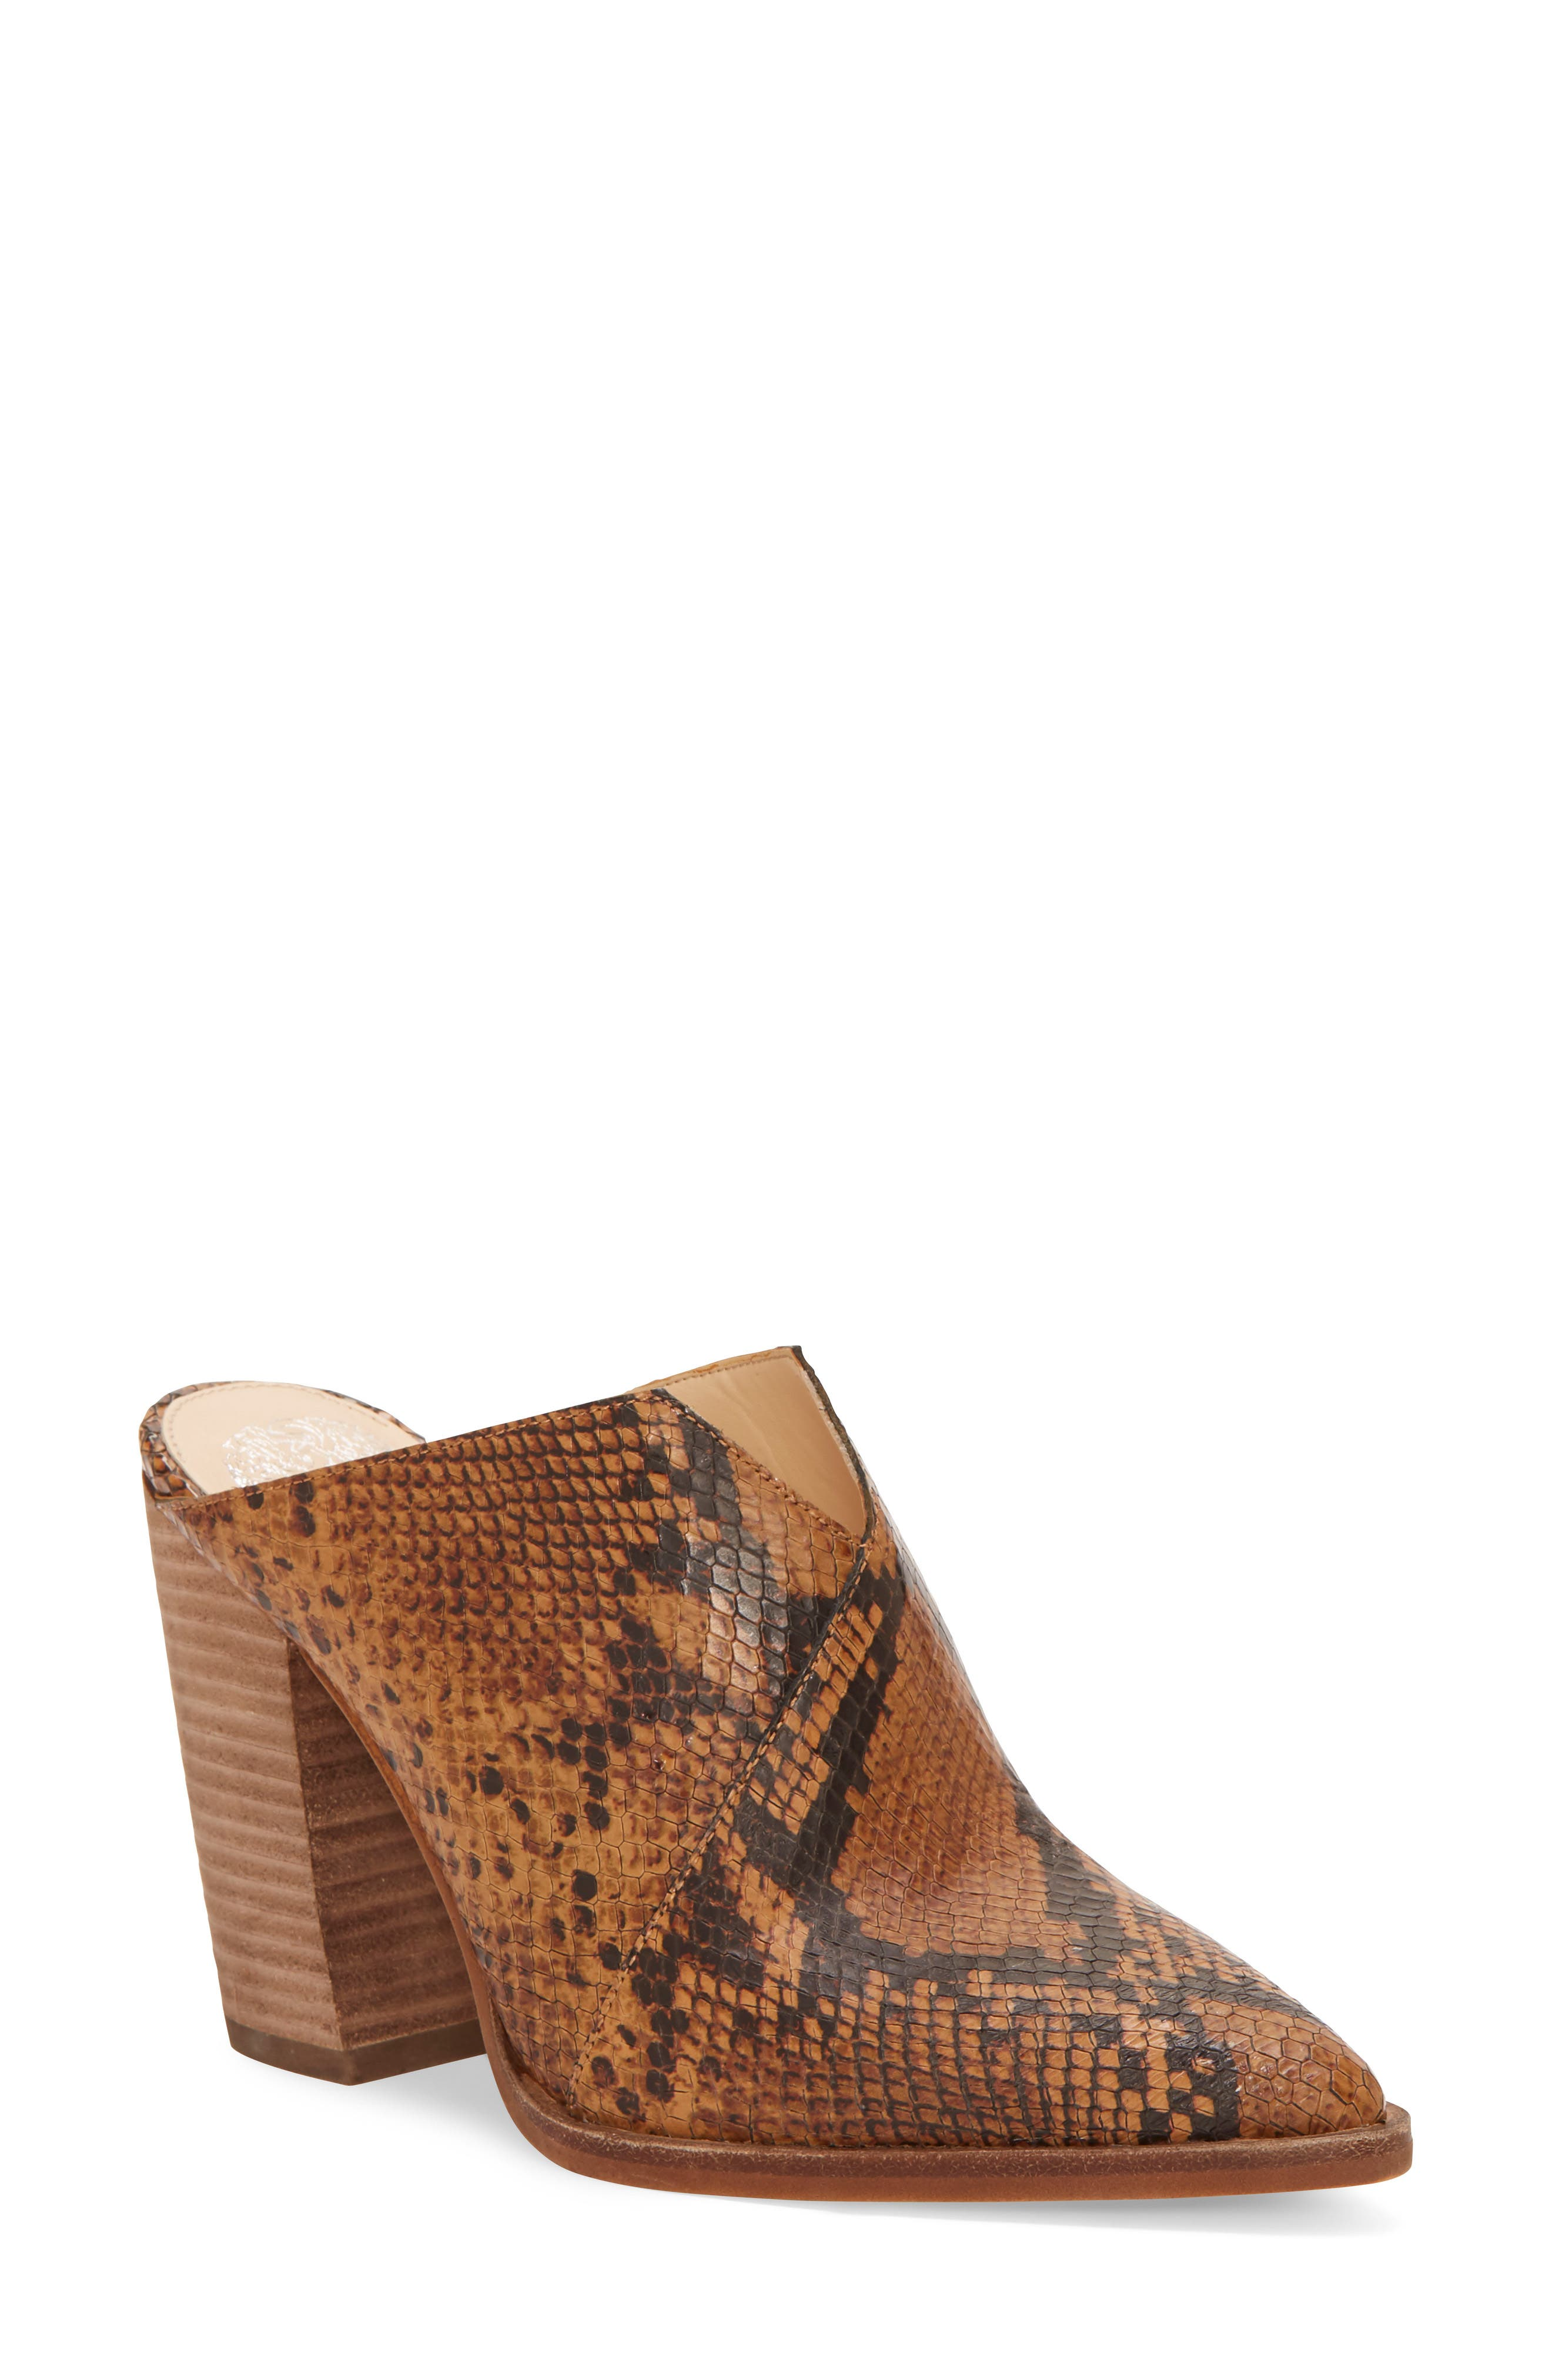 Vince Camuto Crissidy Mule, Brown